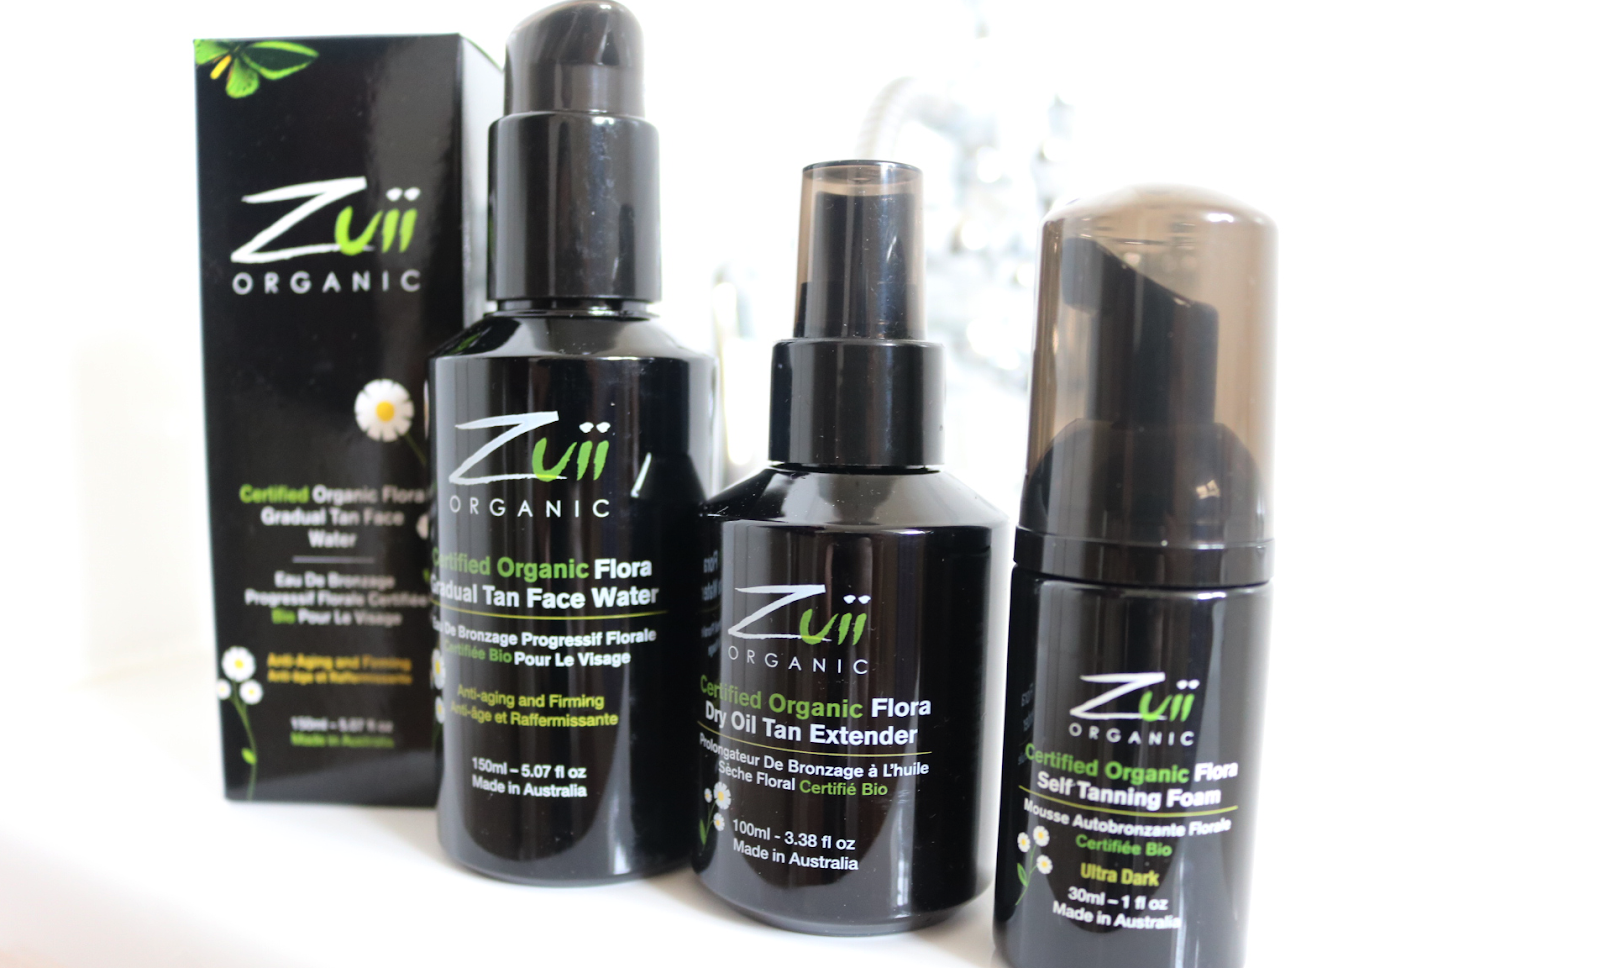 Zuii Organic - Flora Gradual Tan Face Water, Dry Oil Tan Extender & Self-Tanning Foam review